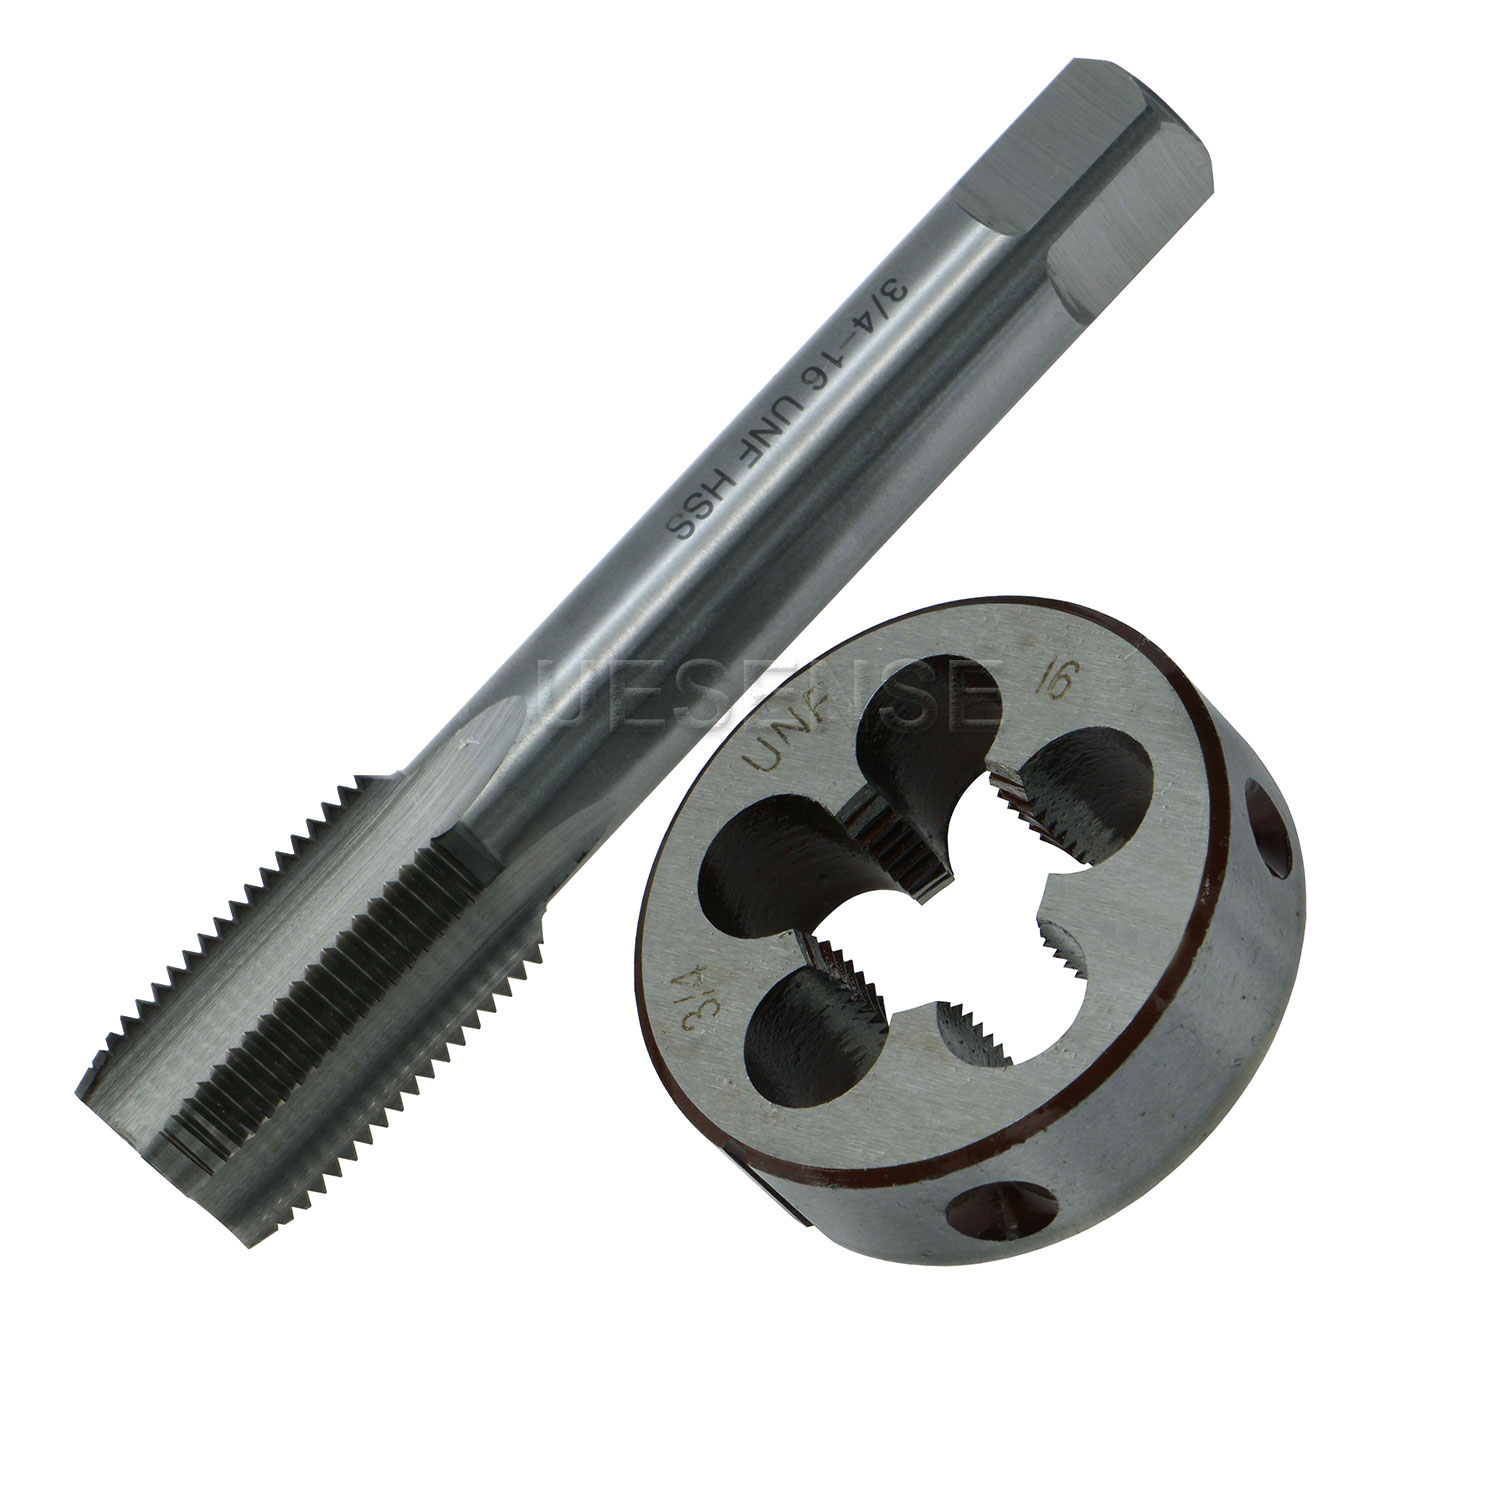 3//4-16 UNF Right Hand Thread Die 3//4/'/' 16 TPI RH Cutting Threading Tapping